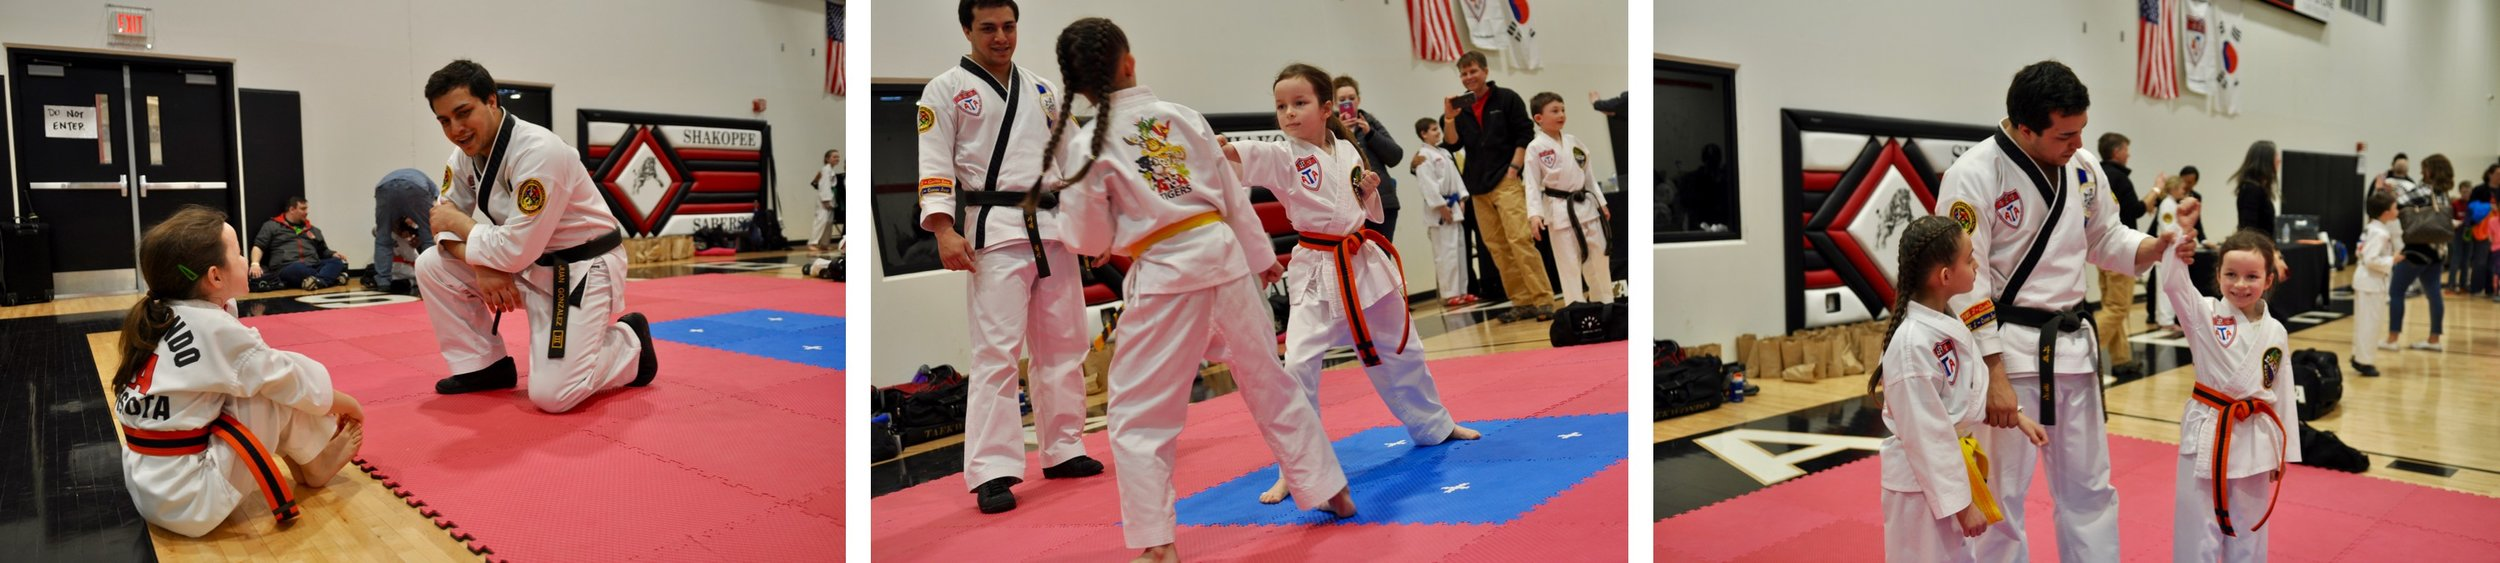 2018-twin-cities-tourney-lakes-martial-arts-005.JPG